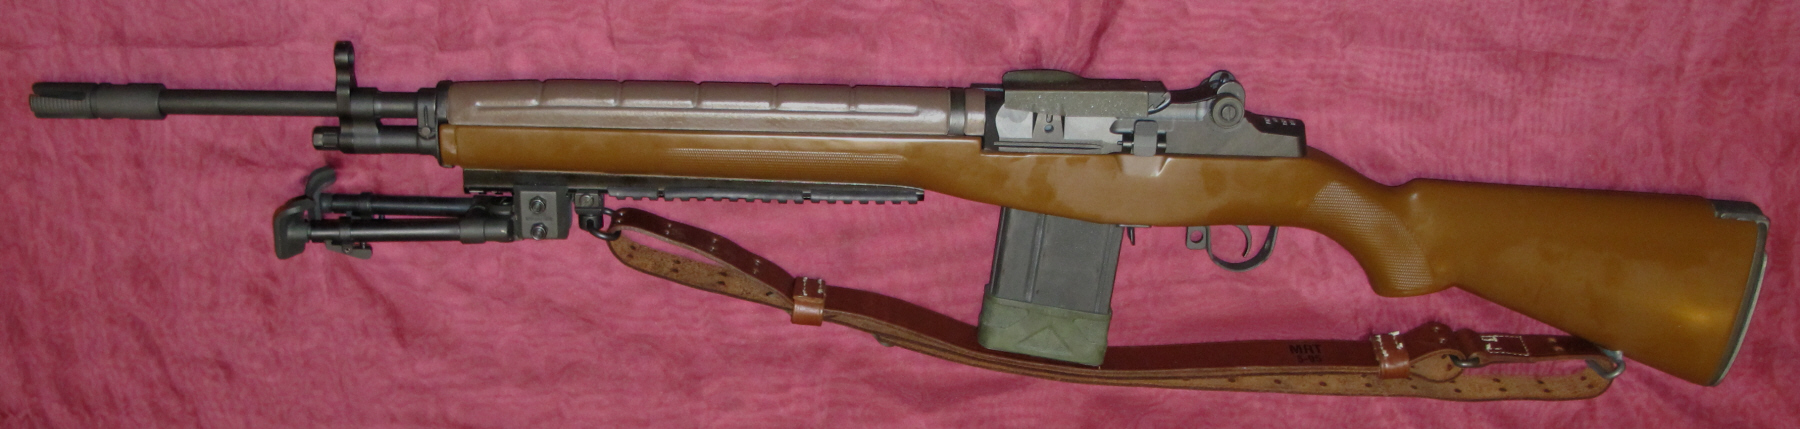 Talk me out of buying a Sage chassis for my Springfield M1A